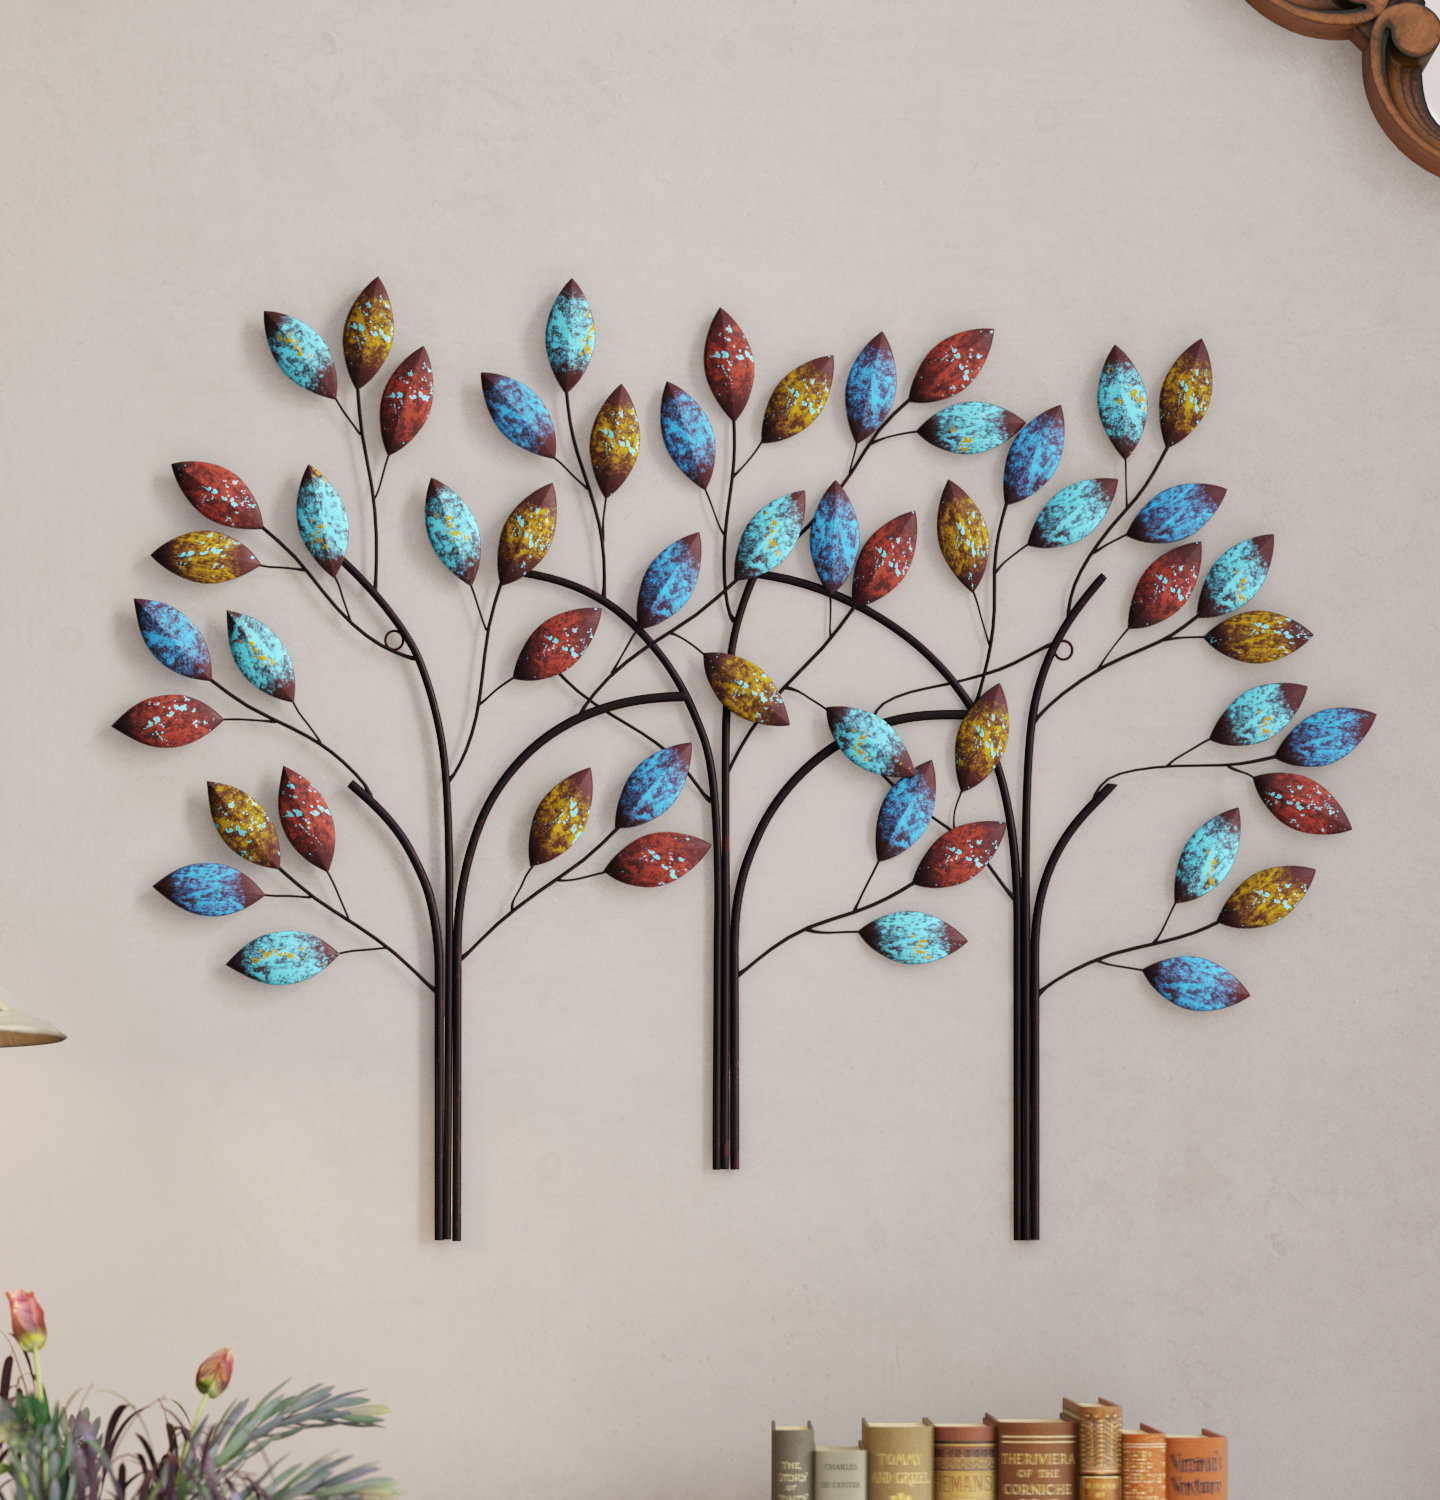 2020 Contemporary Iron Leaves Wall Decor By Winston Porter Pertaining To Winston Porter Tree Branch Wall Decor & Reviews (View 4 of 20)